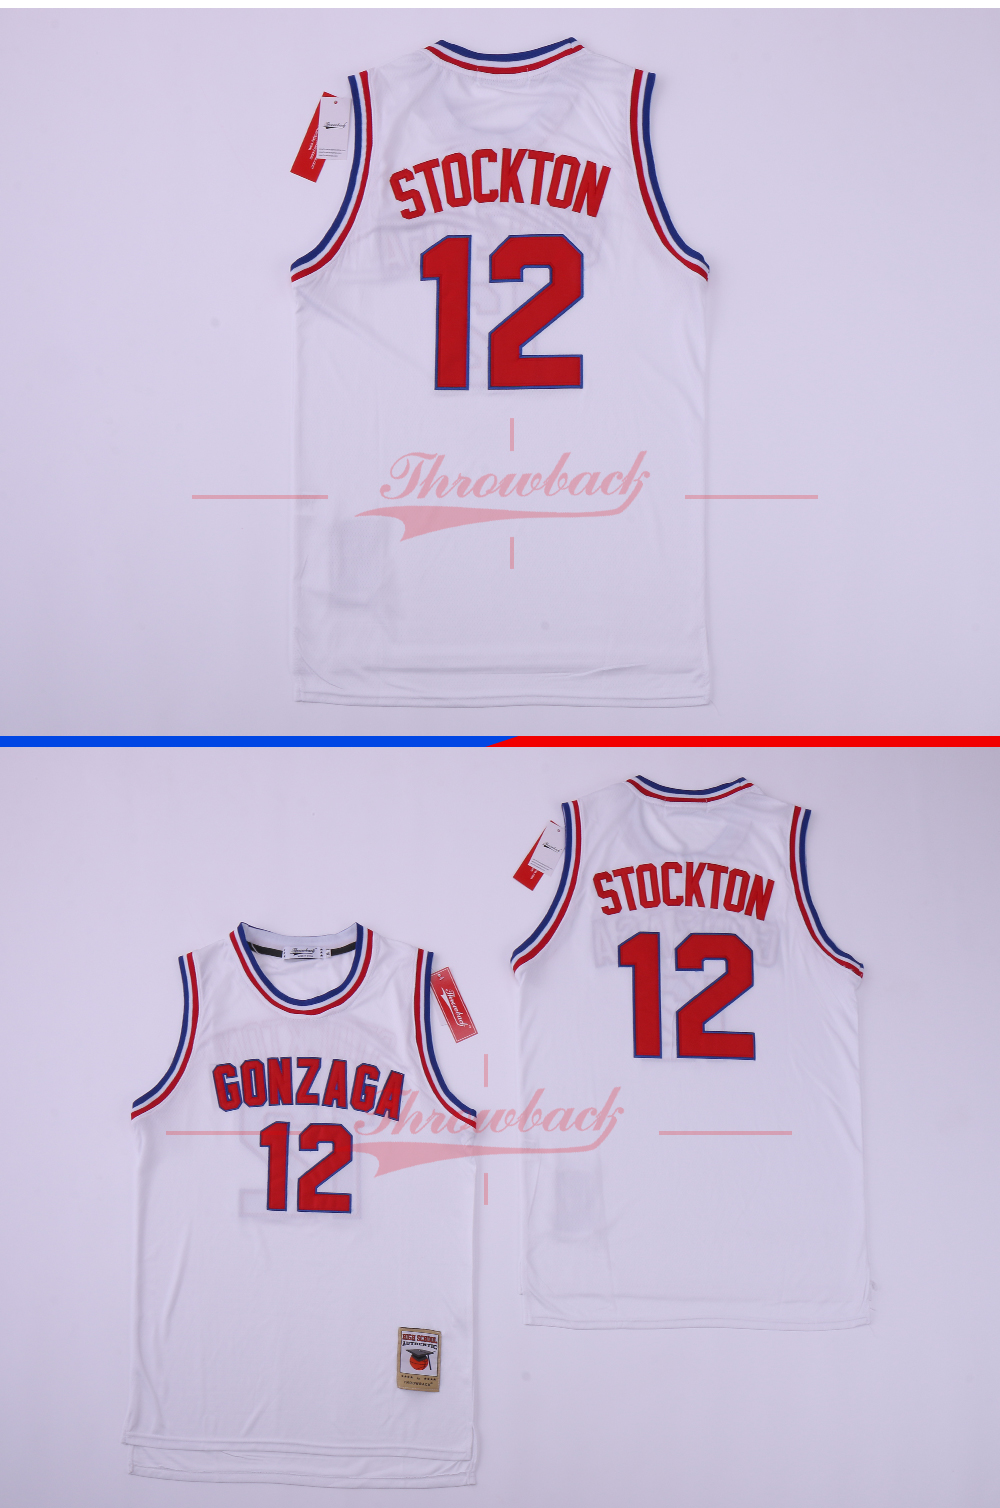 1e7f3b21f90e John Stockton Jersey 12 Gonzaga University College White Basketball ...